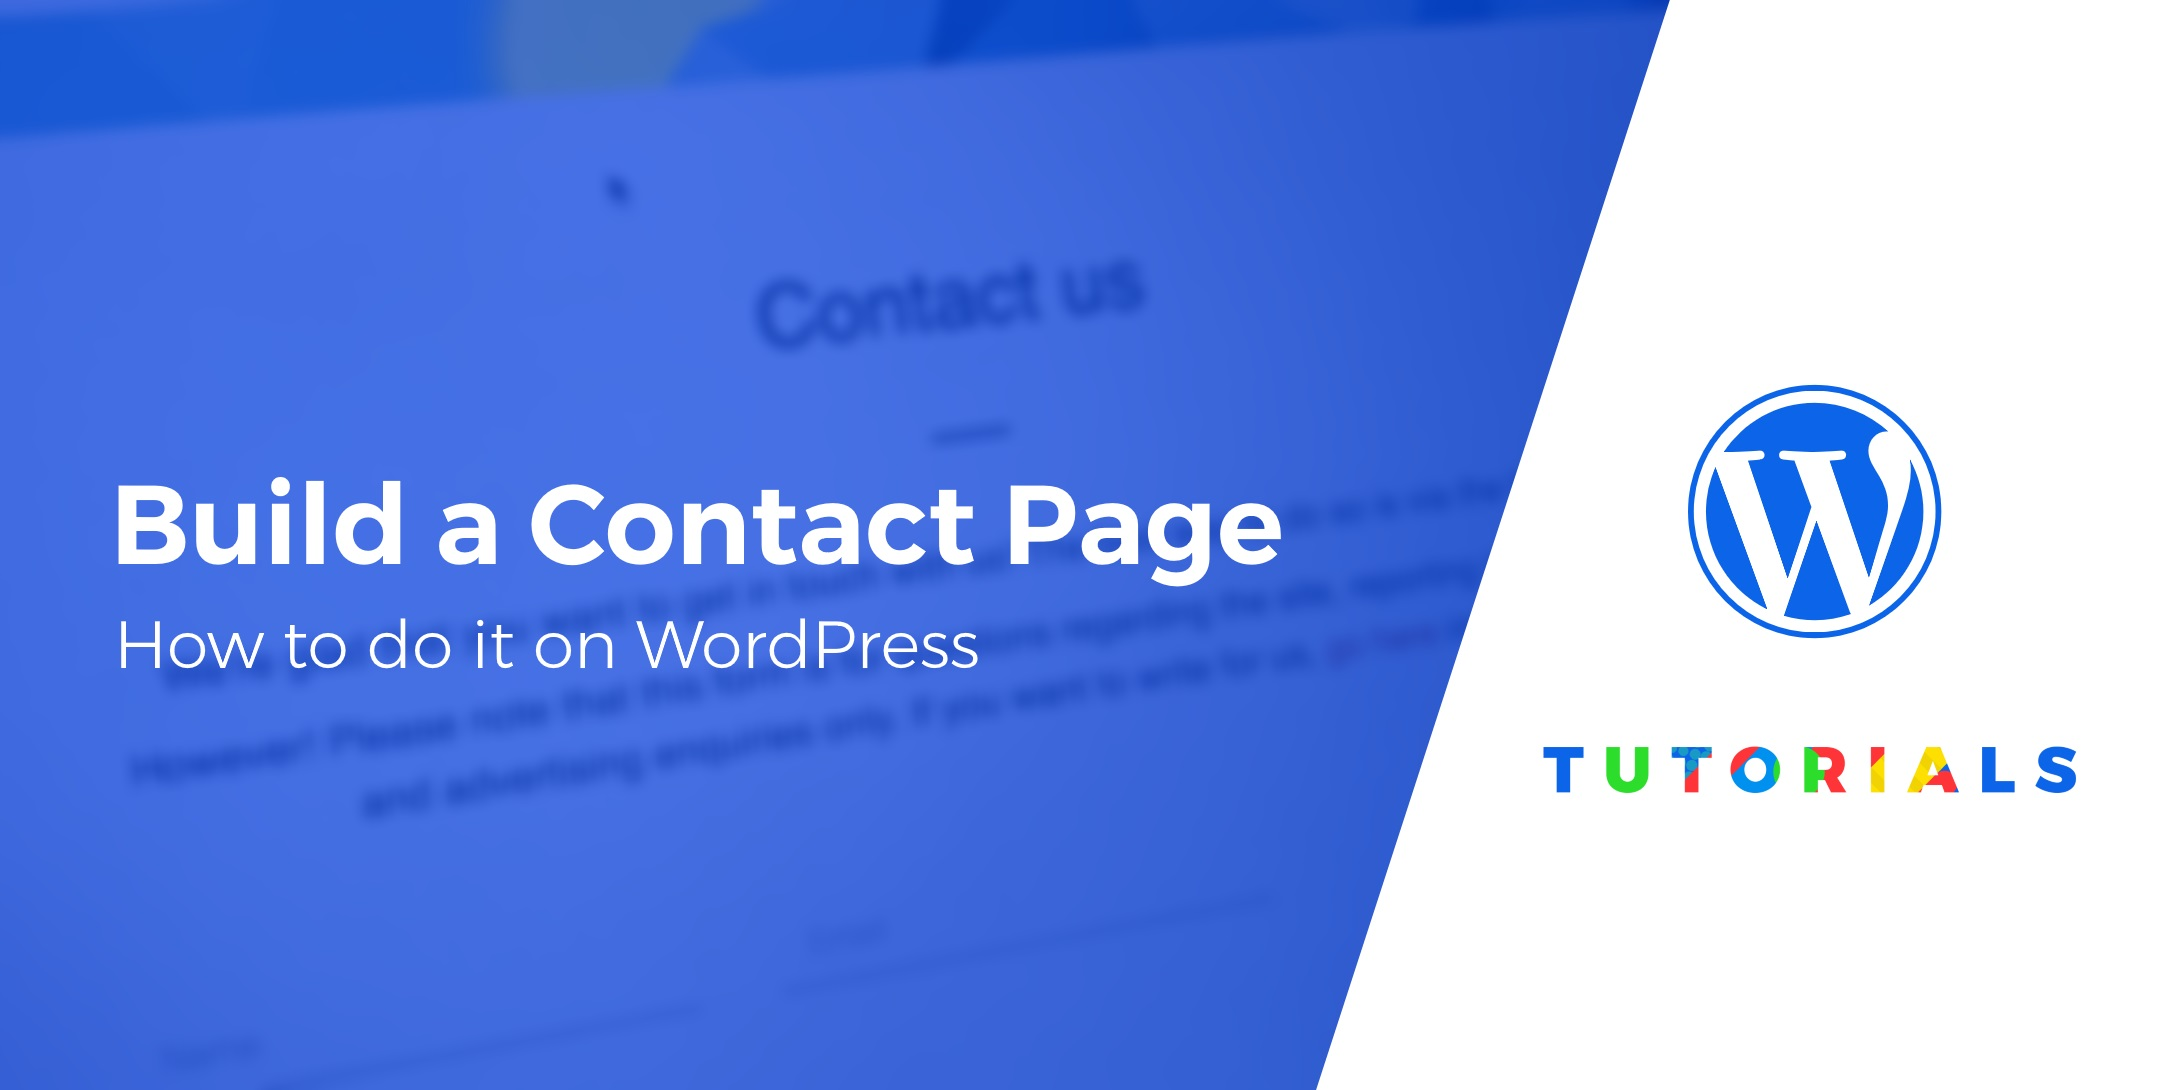 build a contact page on WordPress